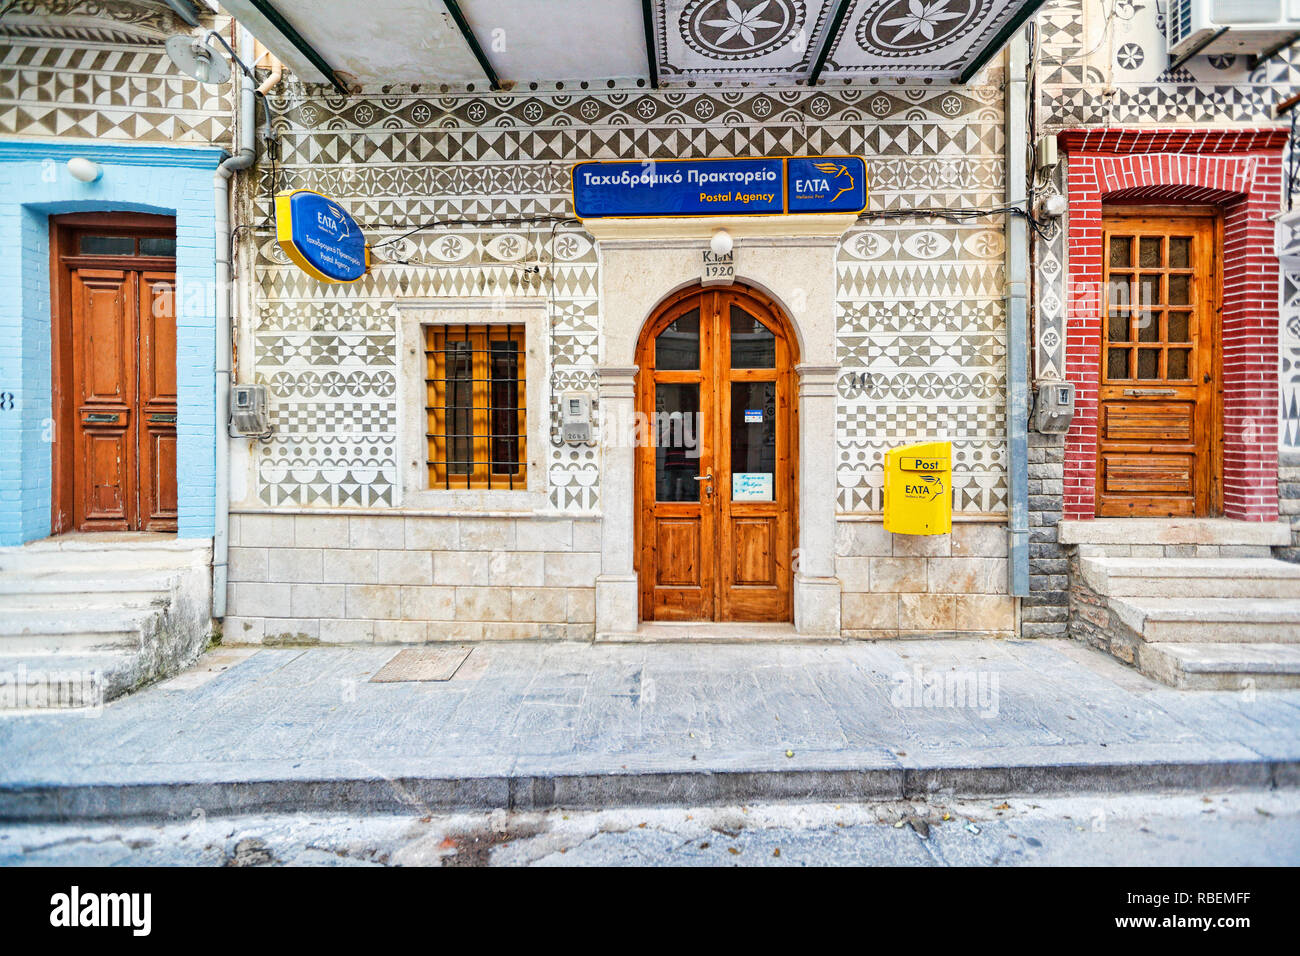 The post office decorated with the famous geometric scratch patterns in the medieval mastic village of Pyrgi on the island of Chios, Greece Stock Photo